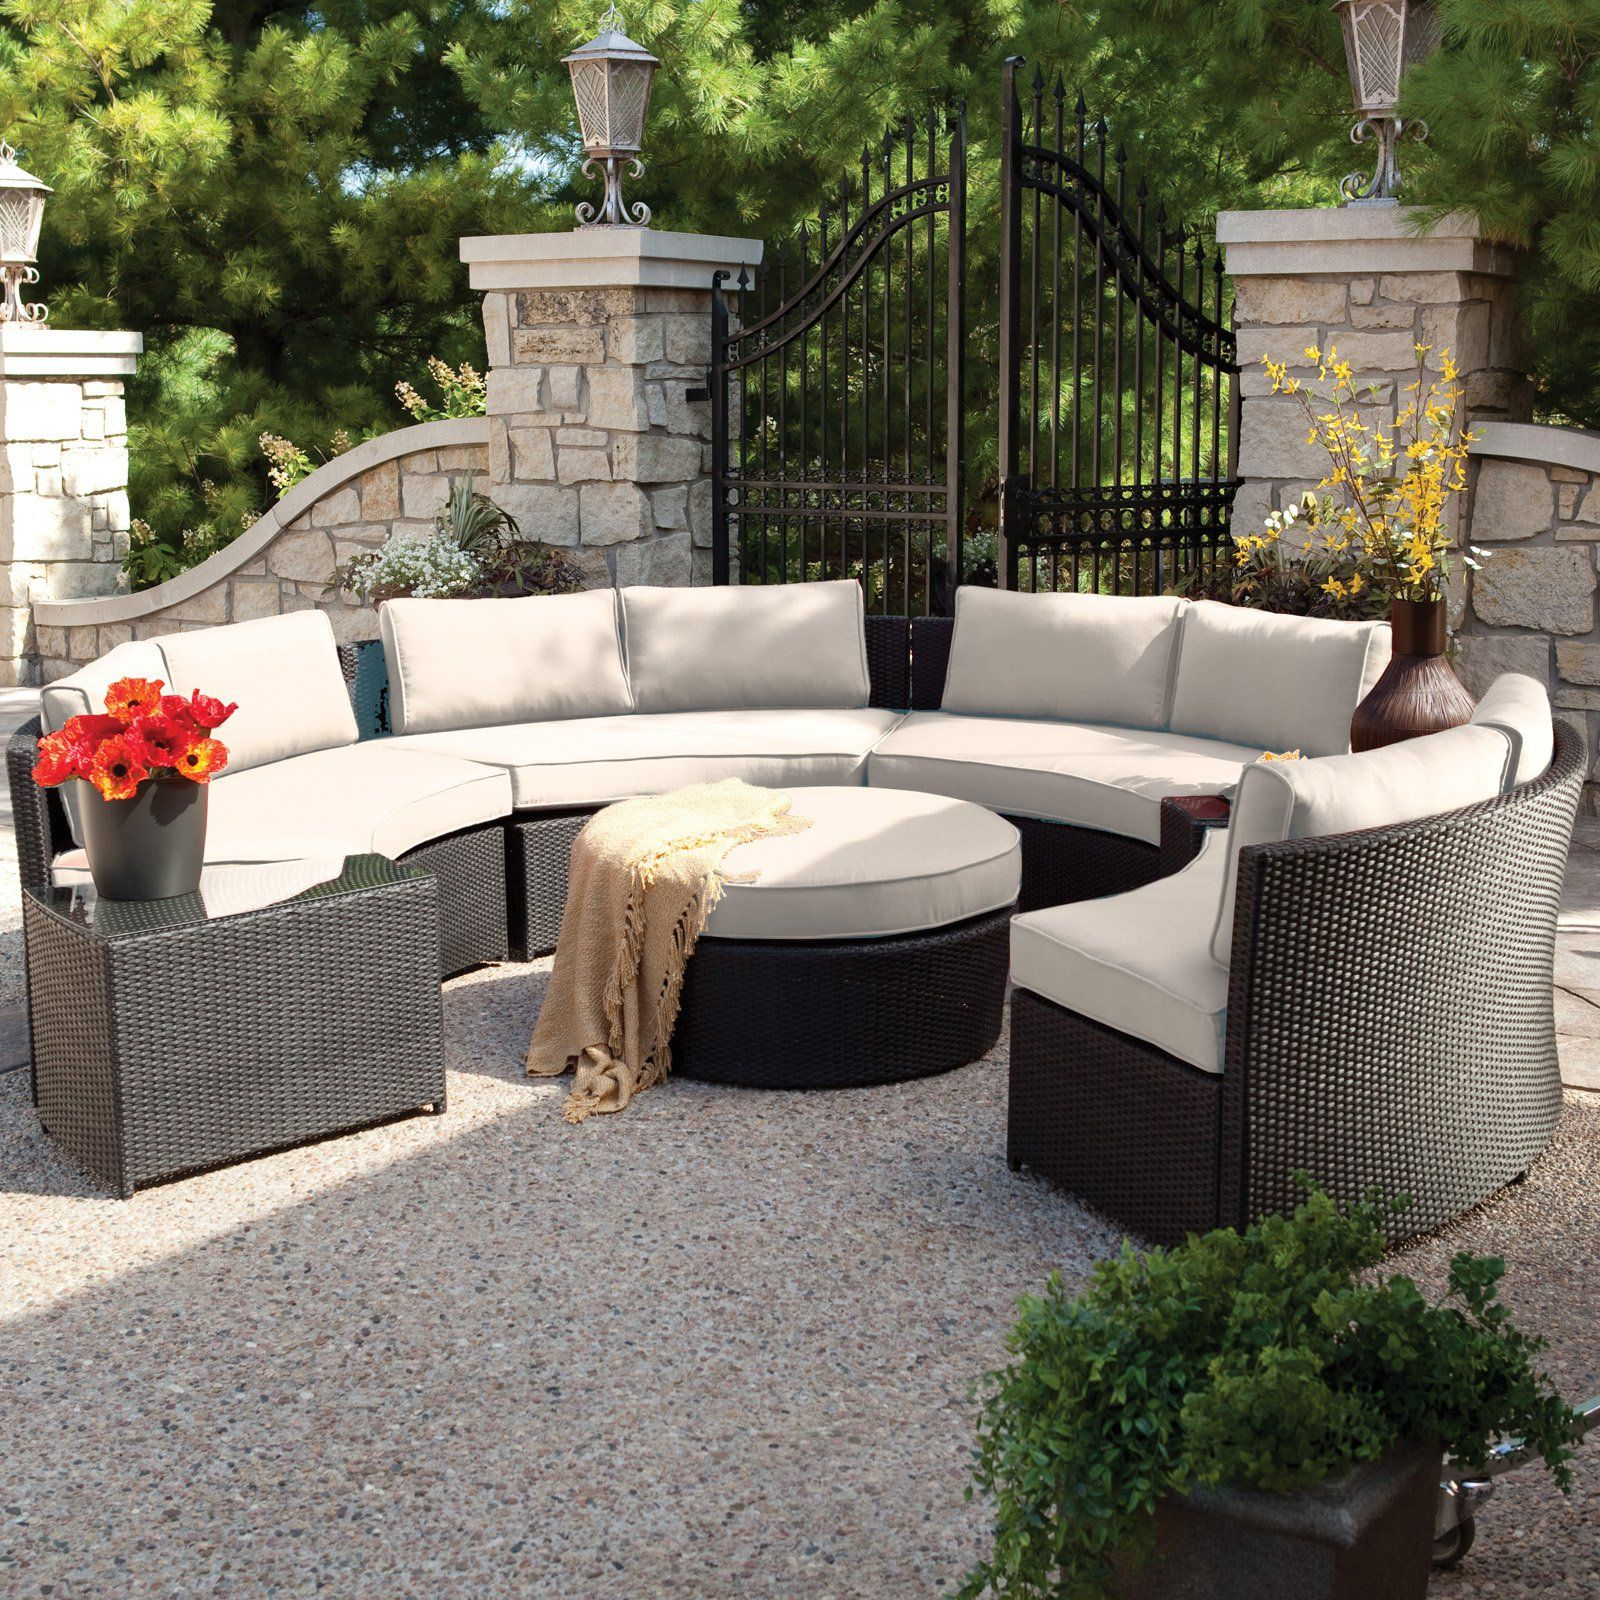 Outdoor Patio Furniture Sets For Relaxing Outdoor Wicker Patio